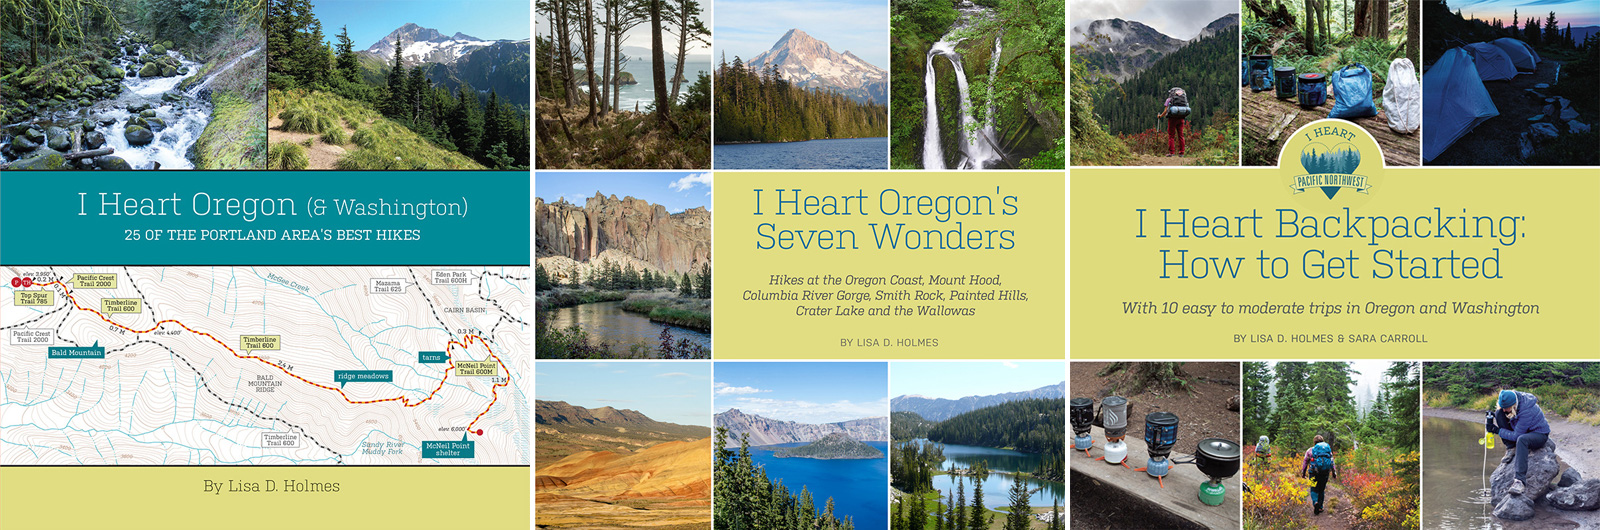 I Heart Pacific Northwest hiking books